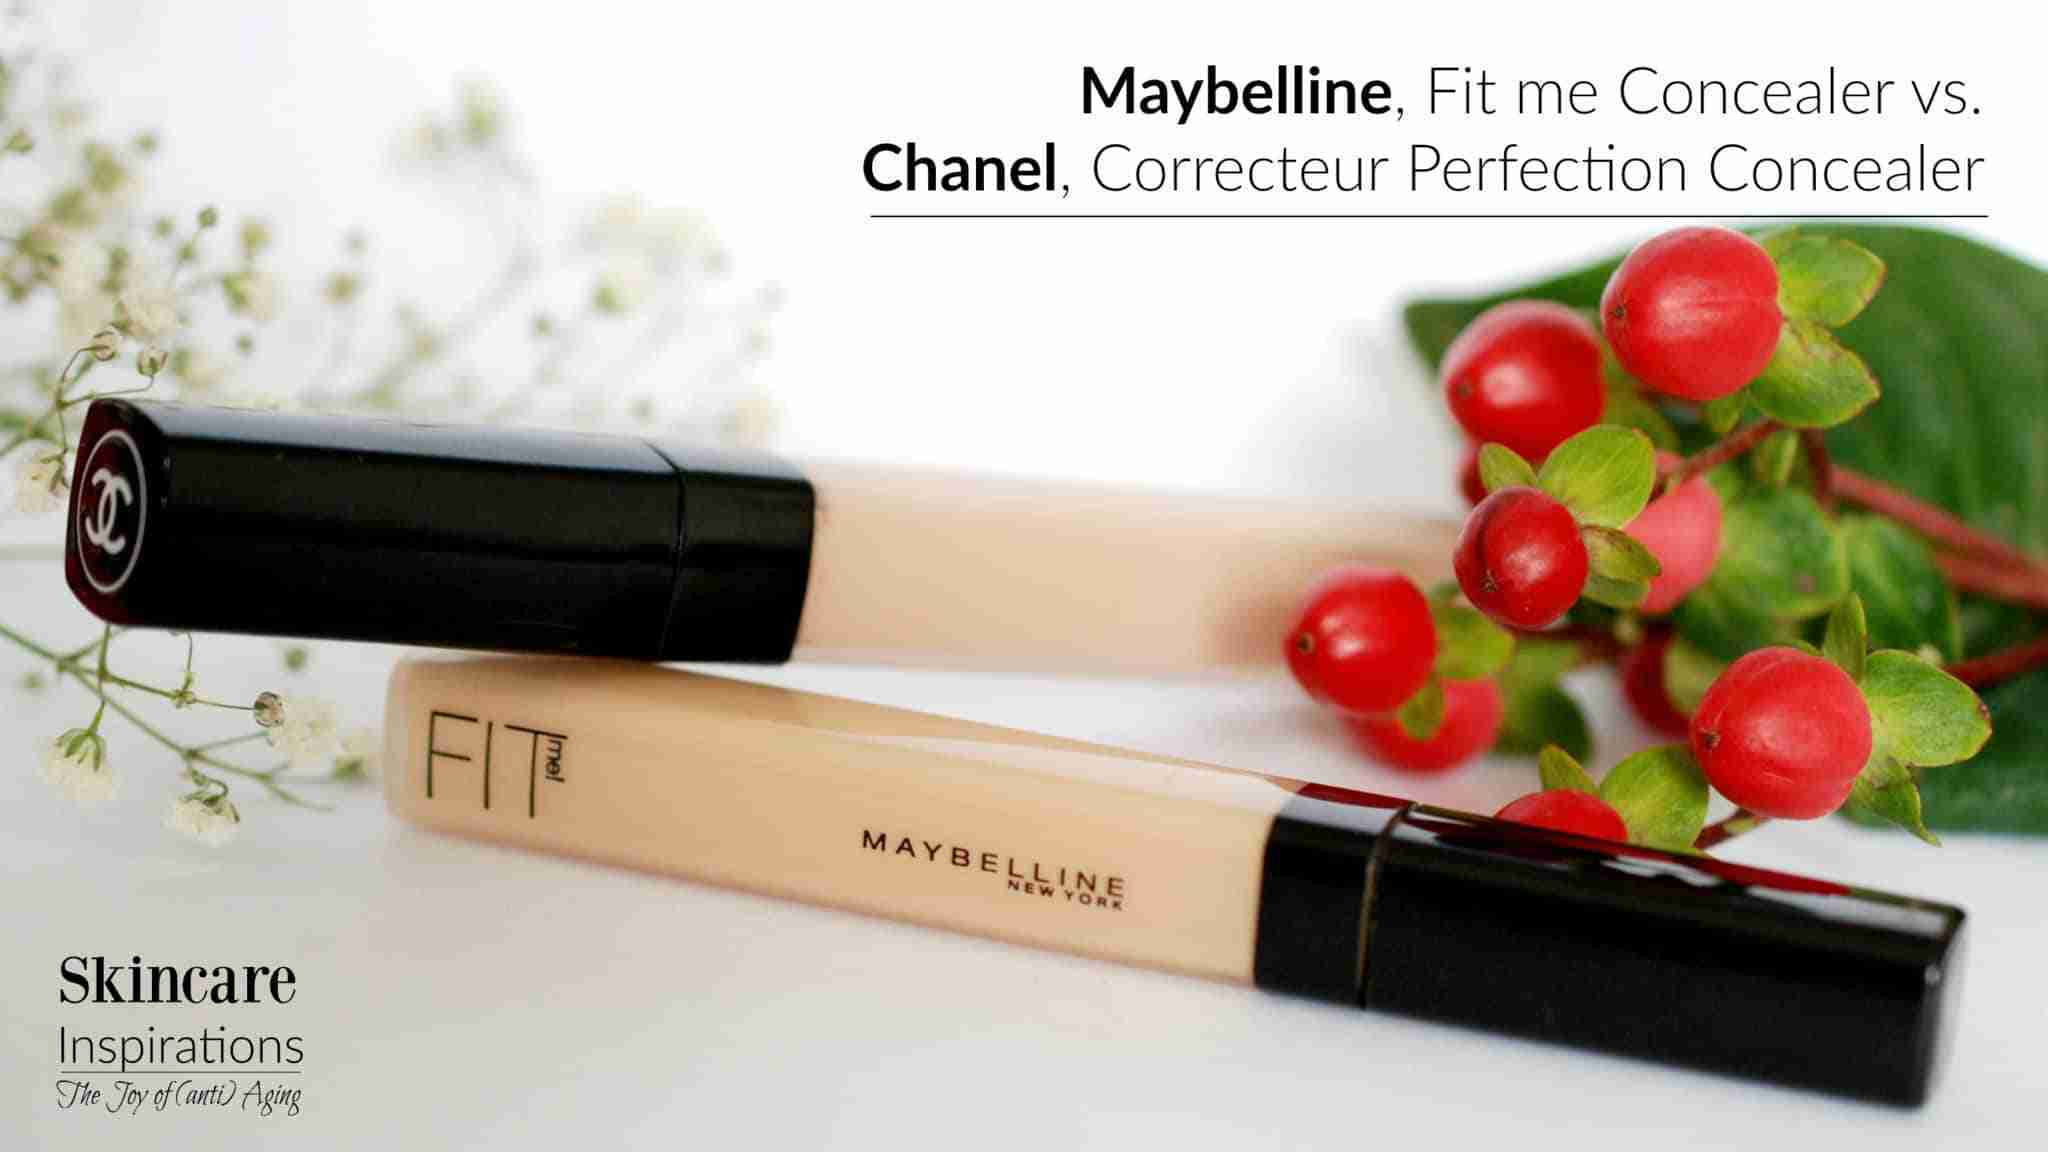 Maybelline Fit me versus Chanel Correcteur Perfection Concealer